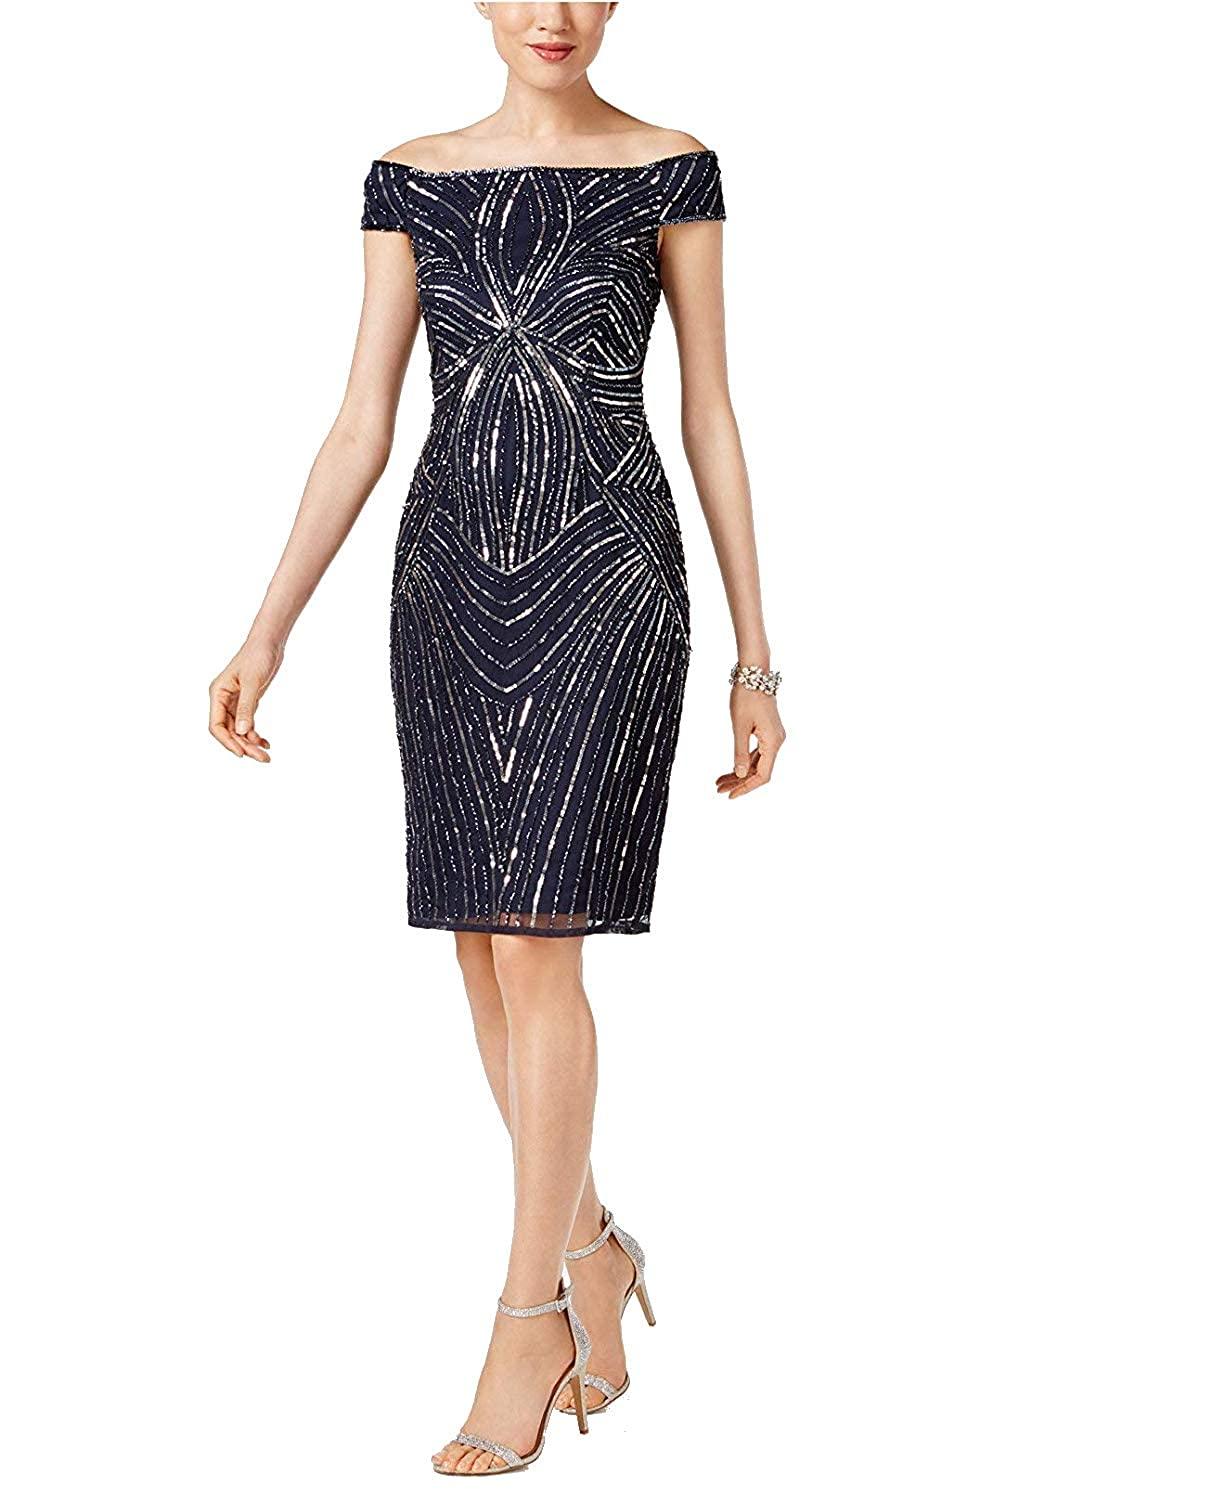 0f7fd4dbe69cb Adrianna Papell Women's Sequined Off-The-Shoulder Sheath Dress Navy  Gunmetal 12 at Amazon Women's Clothing store: